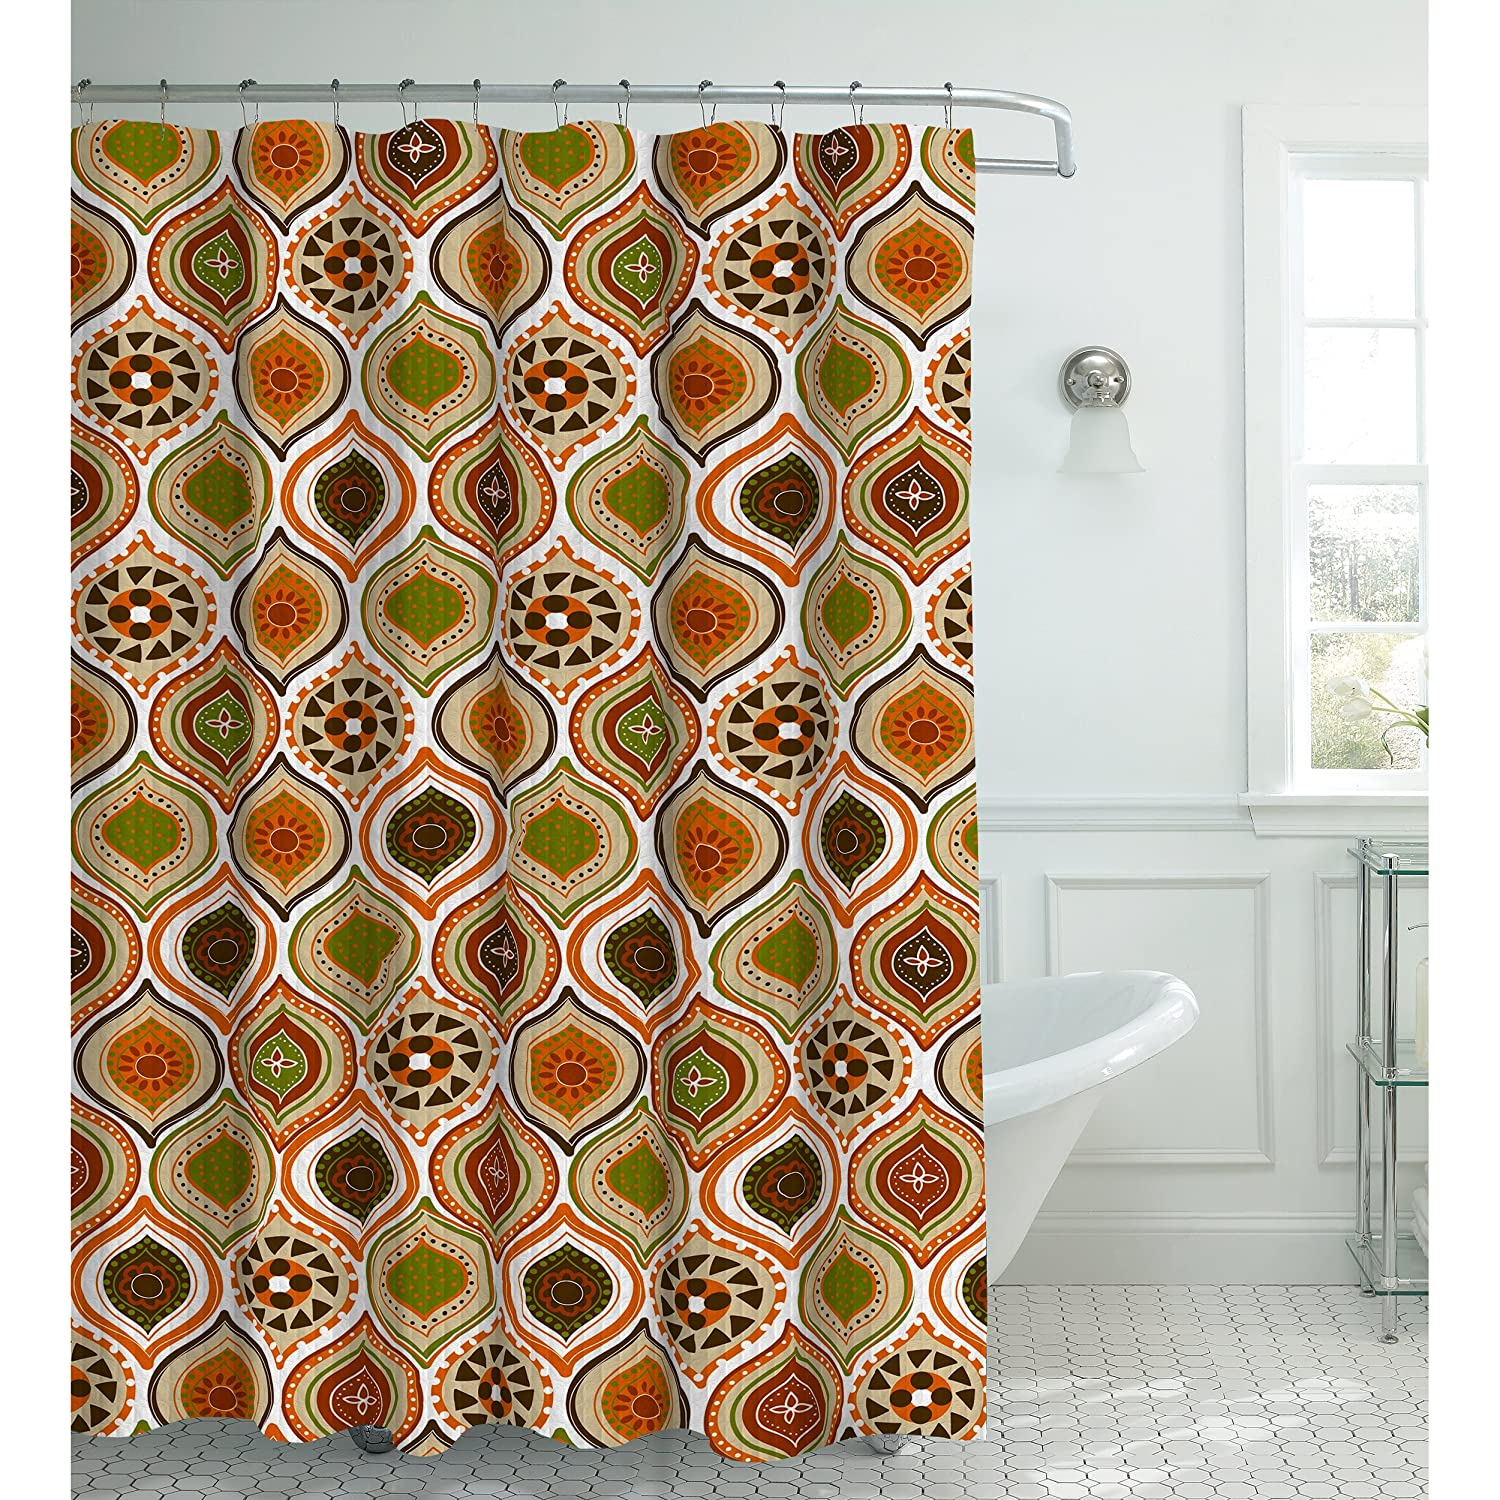 Creative Home Ideas Oxford Weave Textured 13-Piece Shower Curtain with Metal Roller Hooks, Olina Rust YMF Carpet Inc. YMC001374